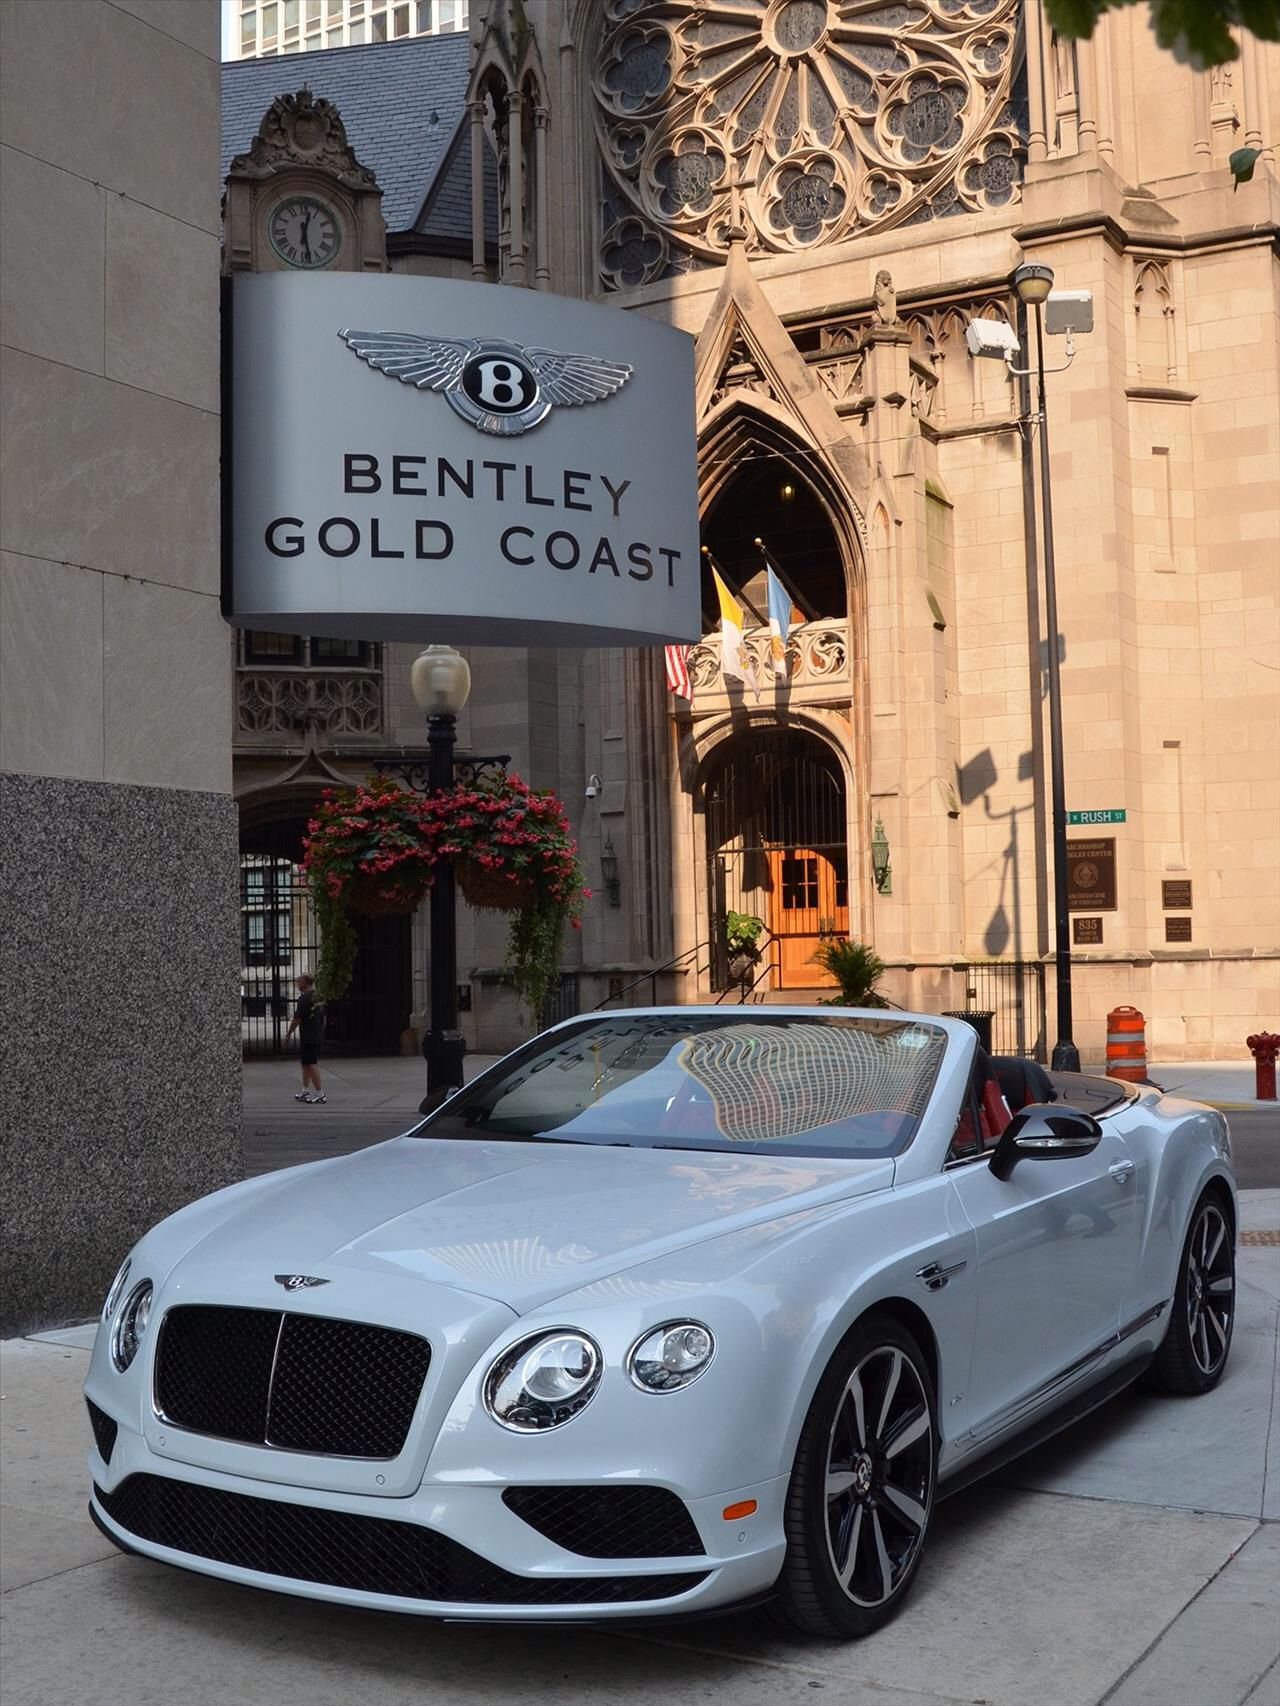 used continental c ct owned l bentley gt pre htm cars s greenwich for near main stock sale